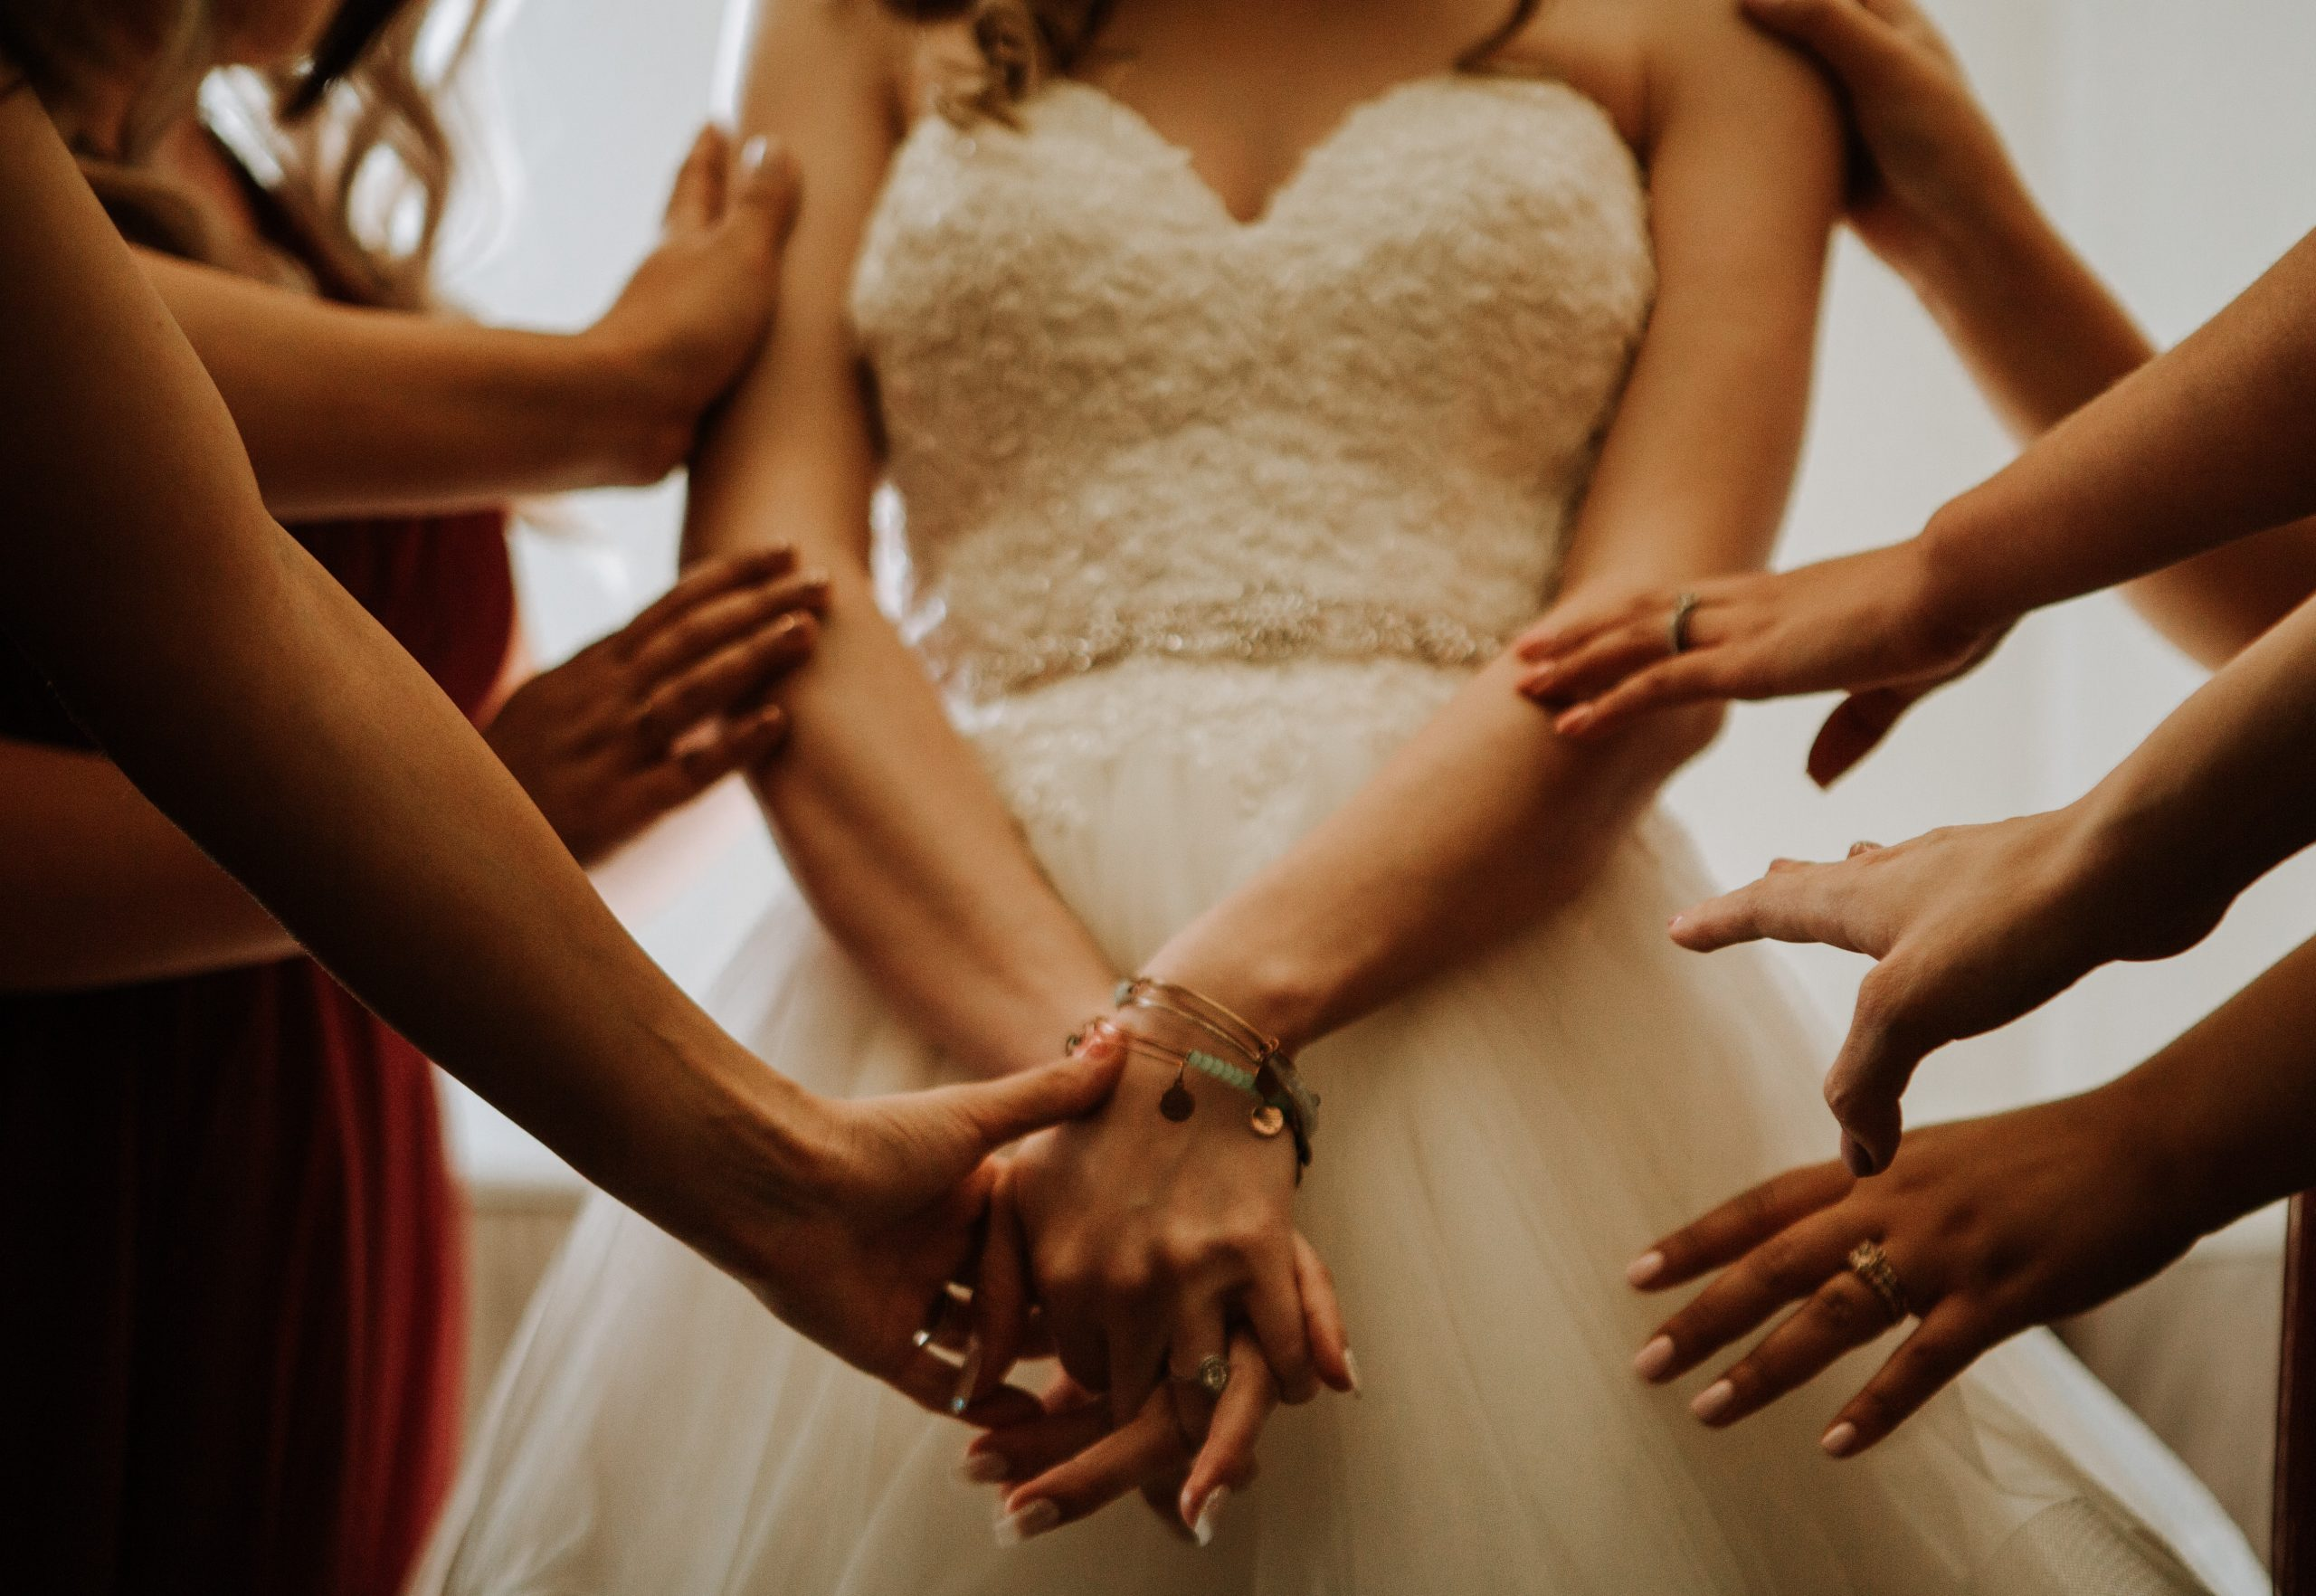 omar lopez UeZ Dz1aPVE unsplash scaled Here Are The Cringiest Wedding Moments Ever Arranged By The Happy Couple Copy